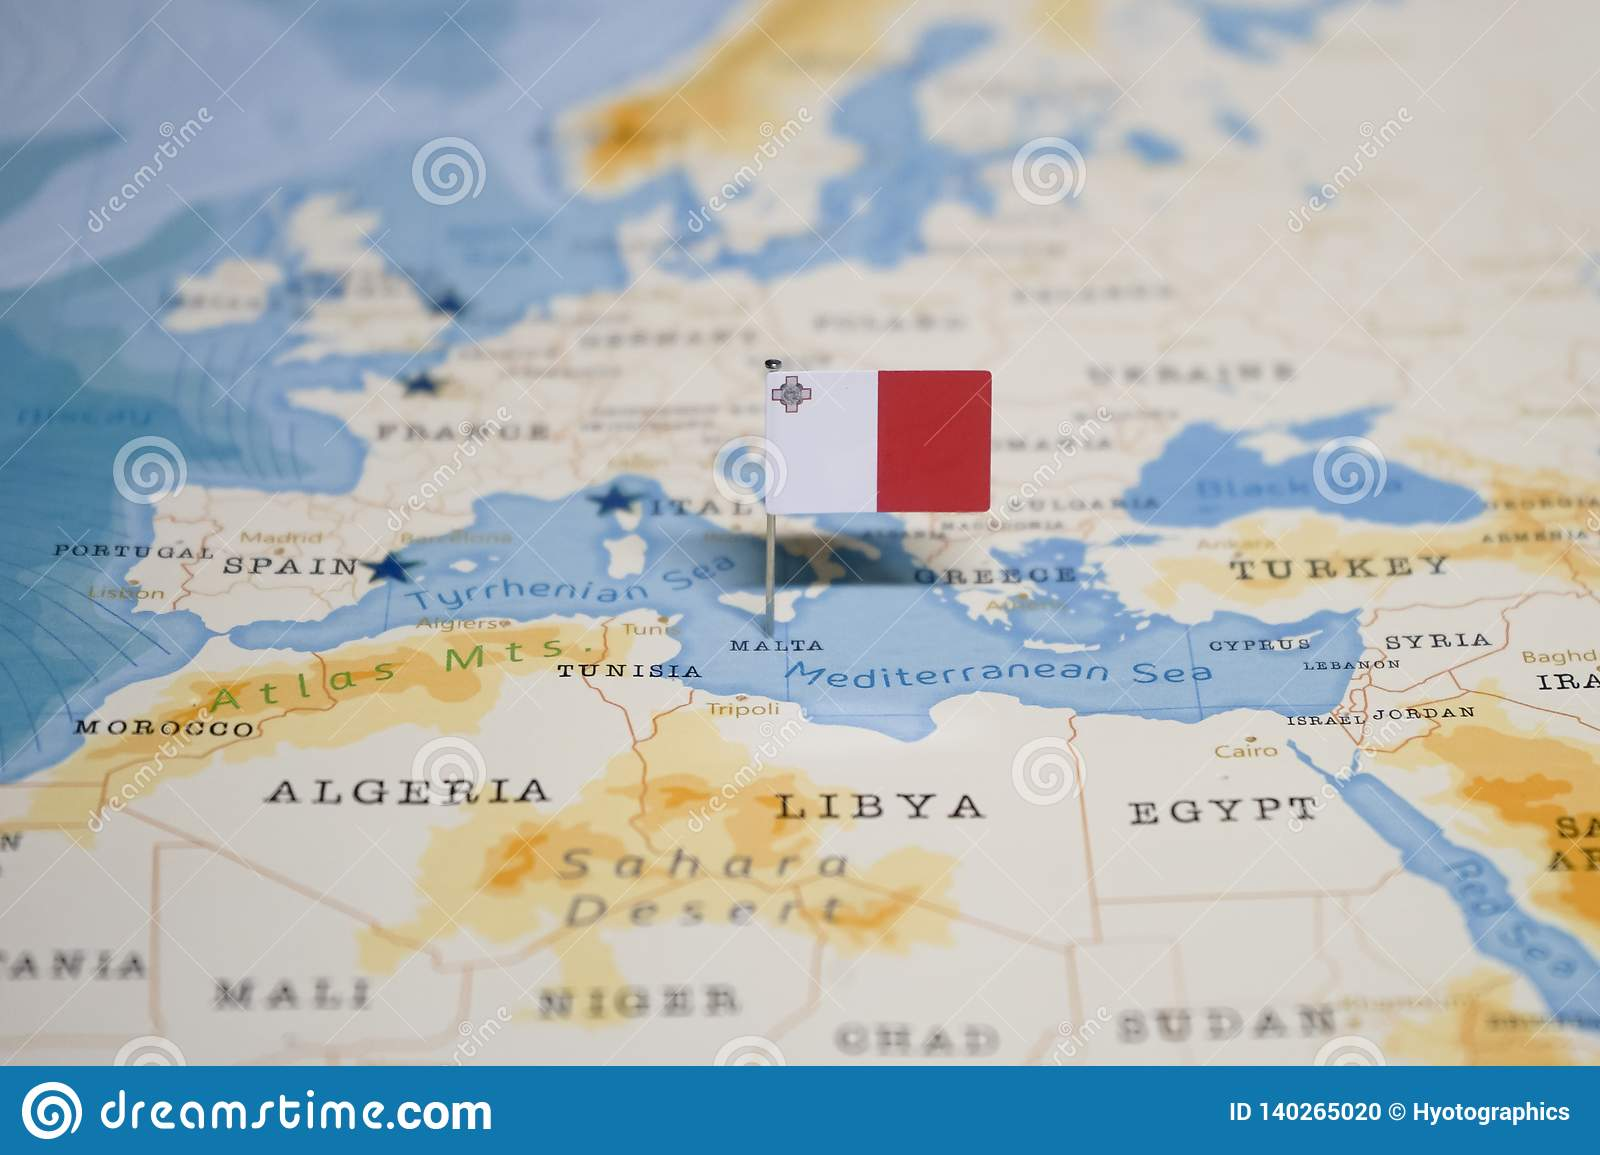 The Flag Of Malta In The World Map Stock Photo - Image of ...